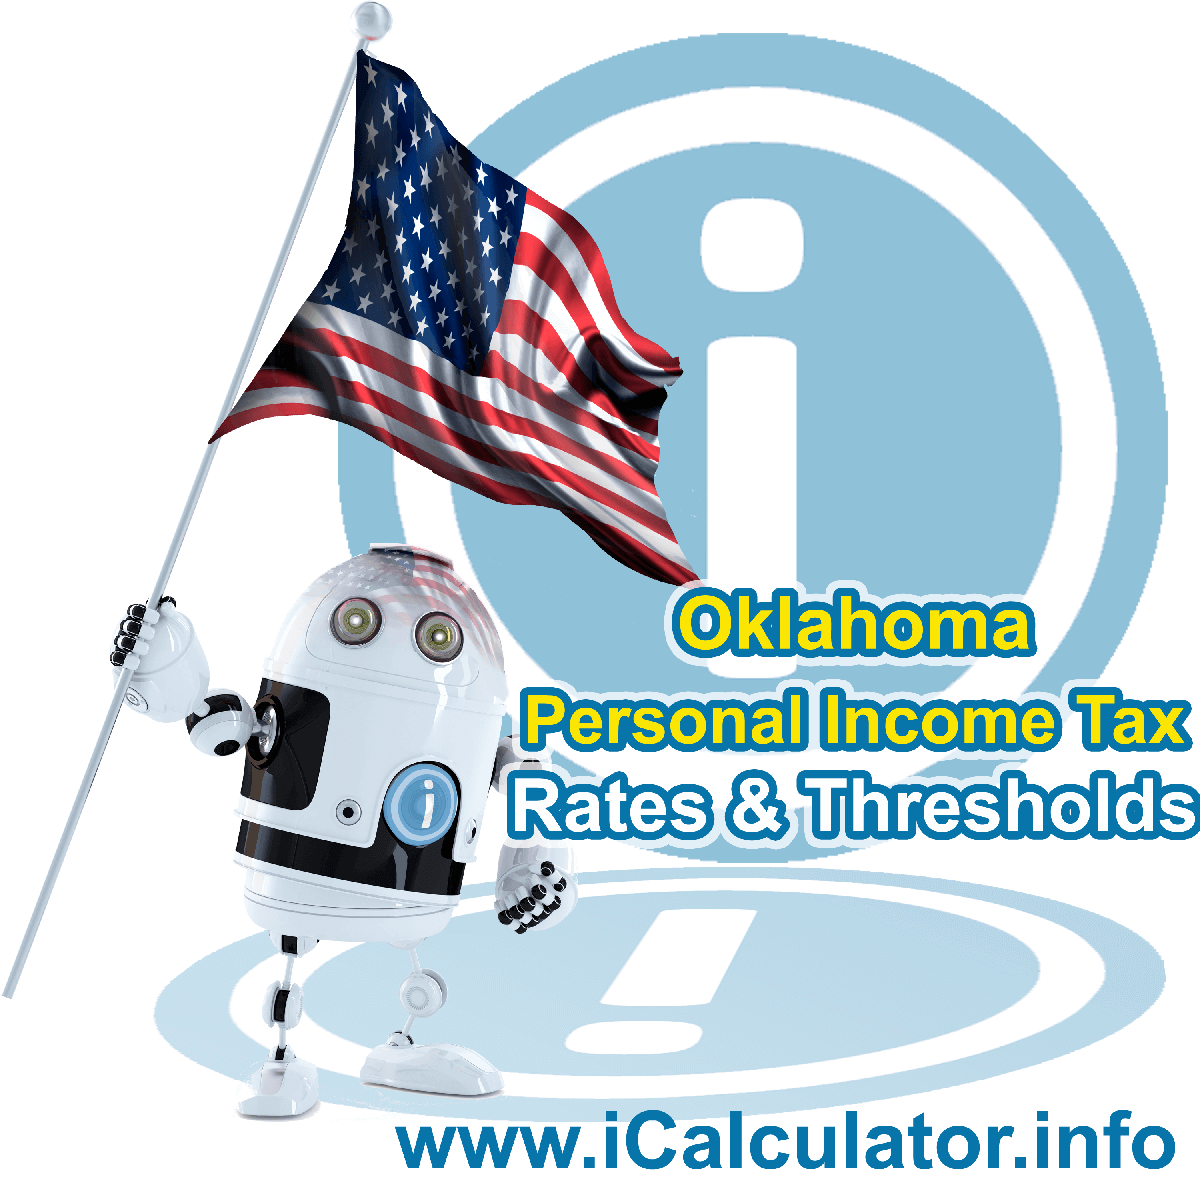 Oklahoma State Tax Tables 2019. This image displays details of the Oklahoma State Tax Tables for the 2019 tax return year which is provided in support of the 2019 US Tax Calculator